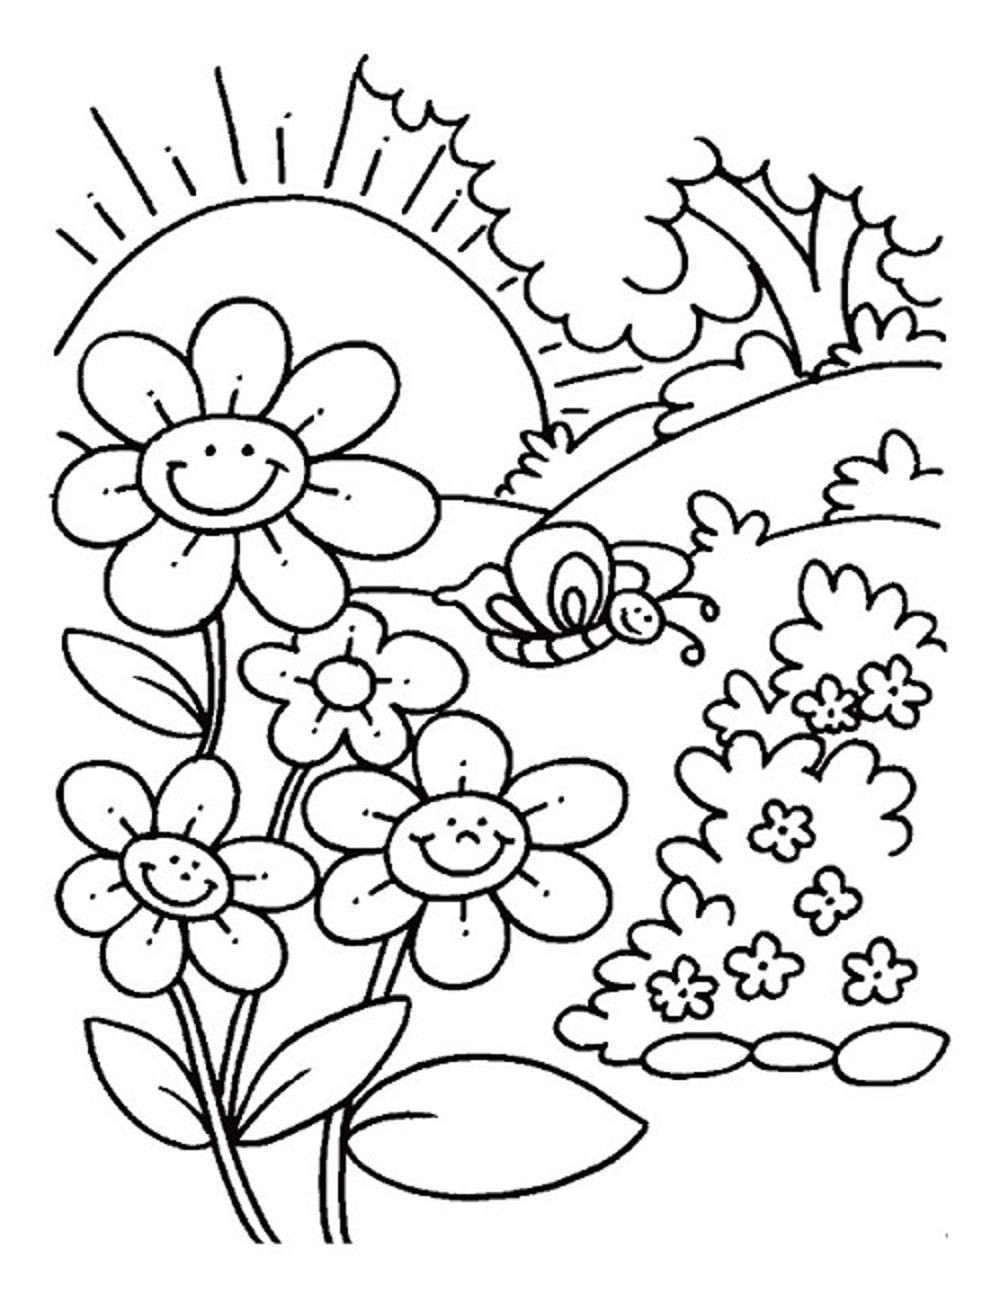 Smiling Flowers | Spring coloring pages, Coloring pages ...